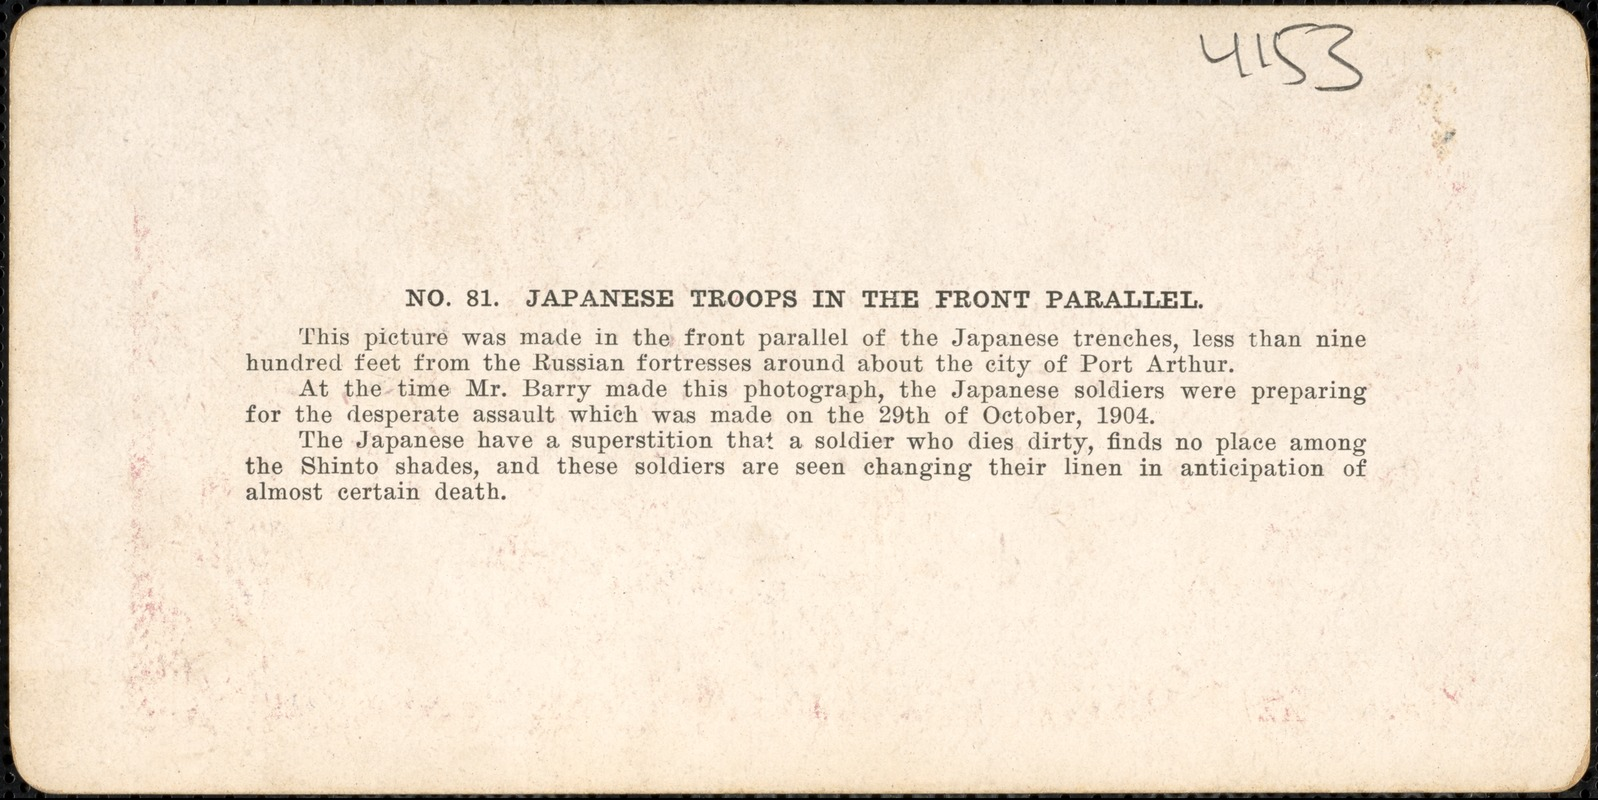 Japanese troops in the front parallel